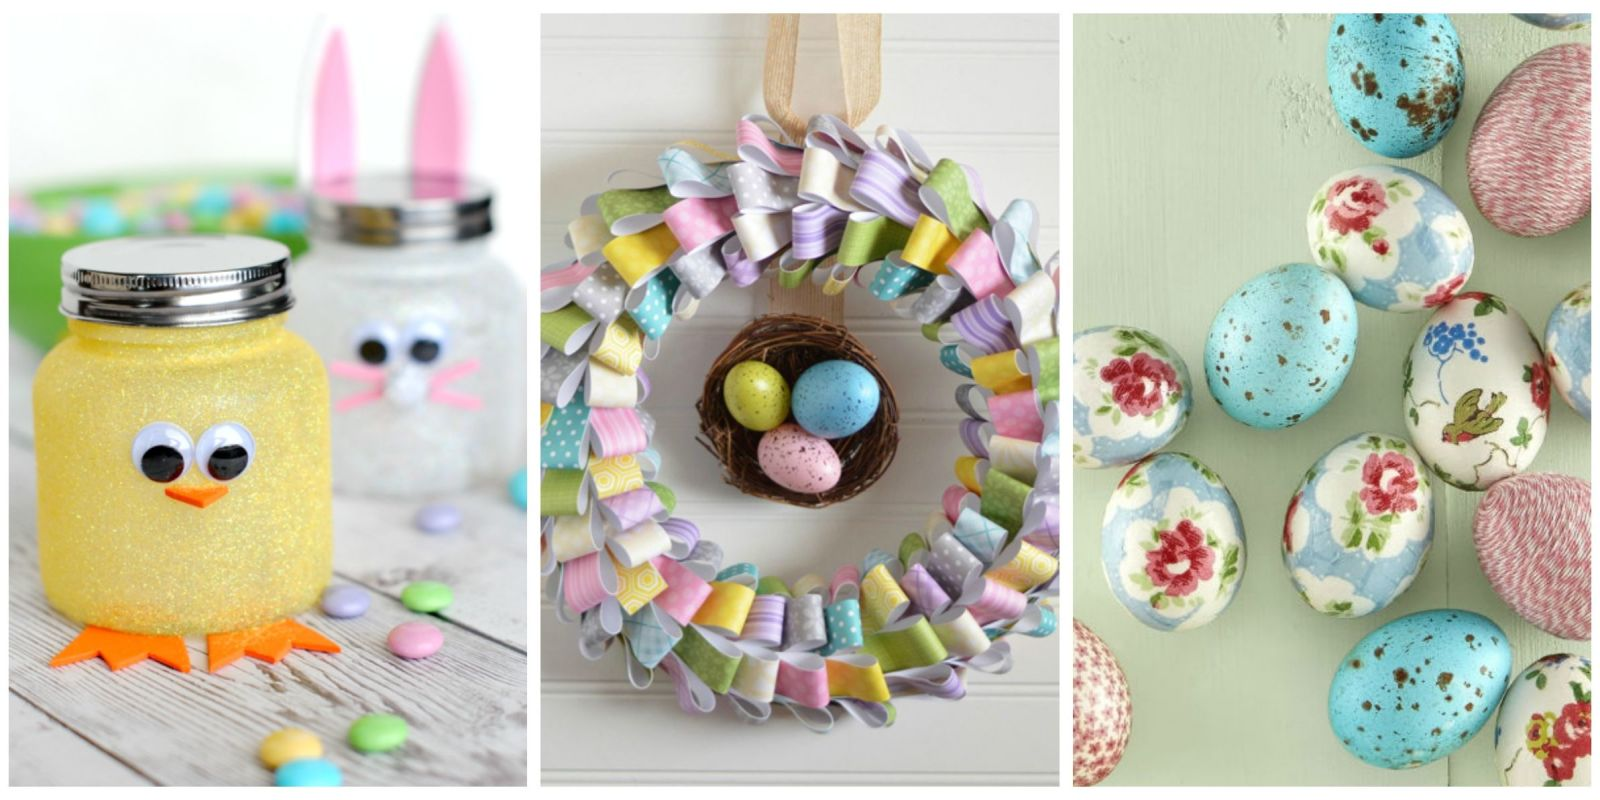 60 Easy Easter Crafts   Ideas For Easter DIY Decorations U0026 Gifts   Country  Living